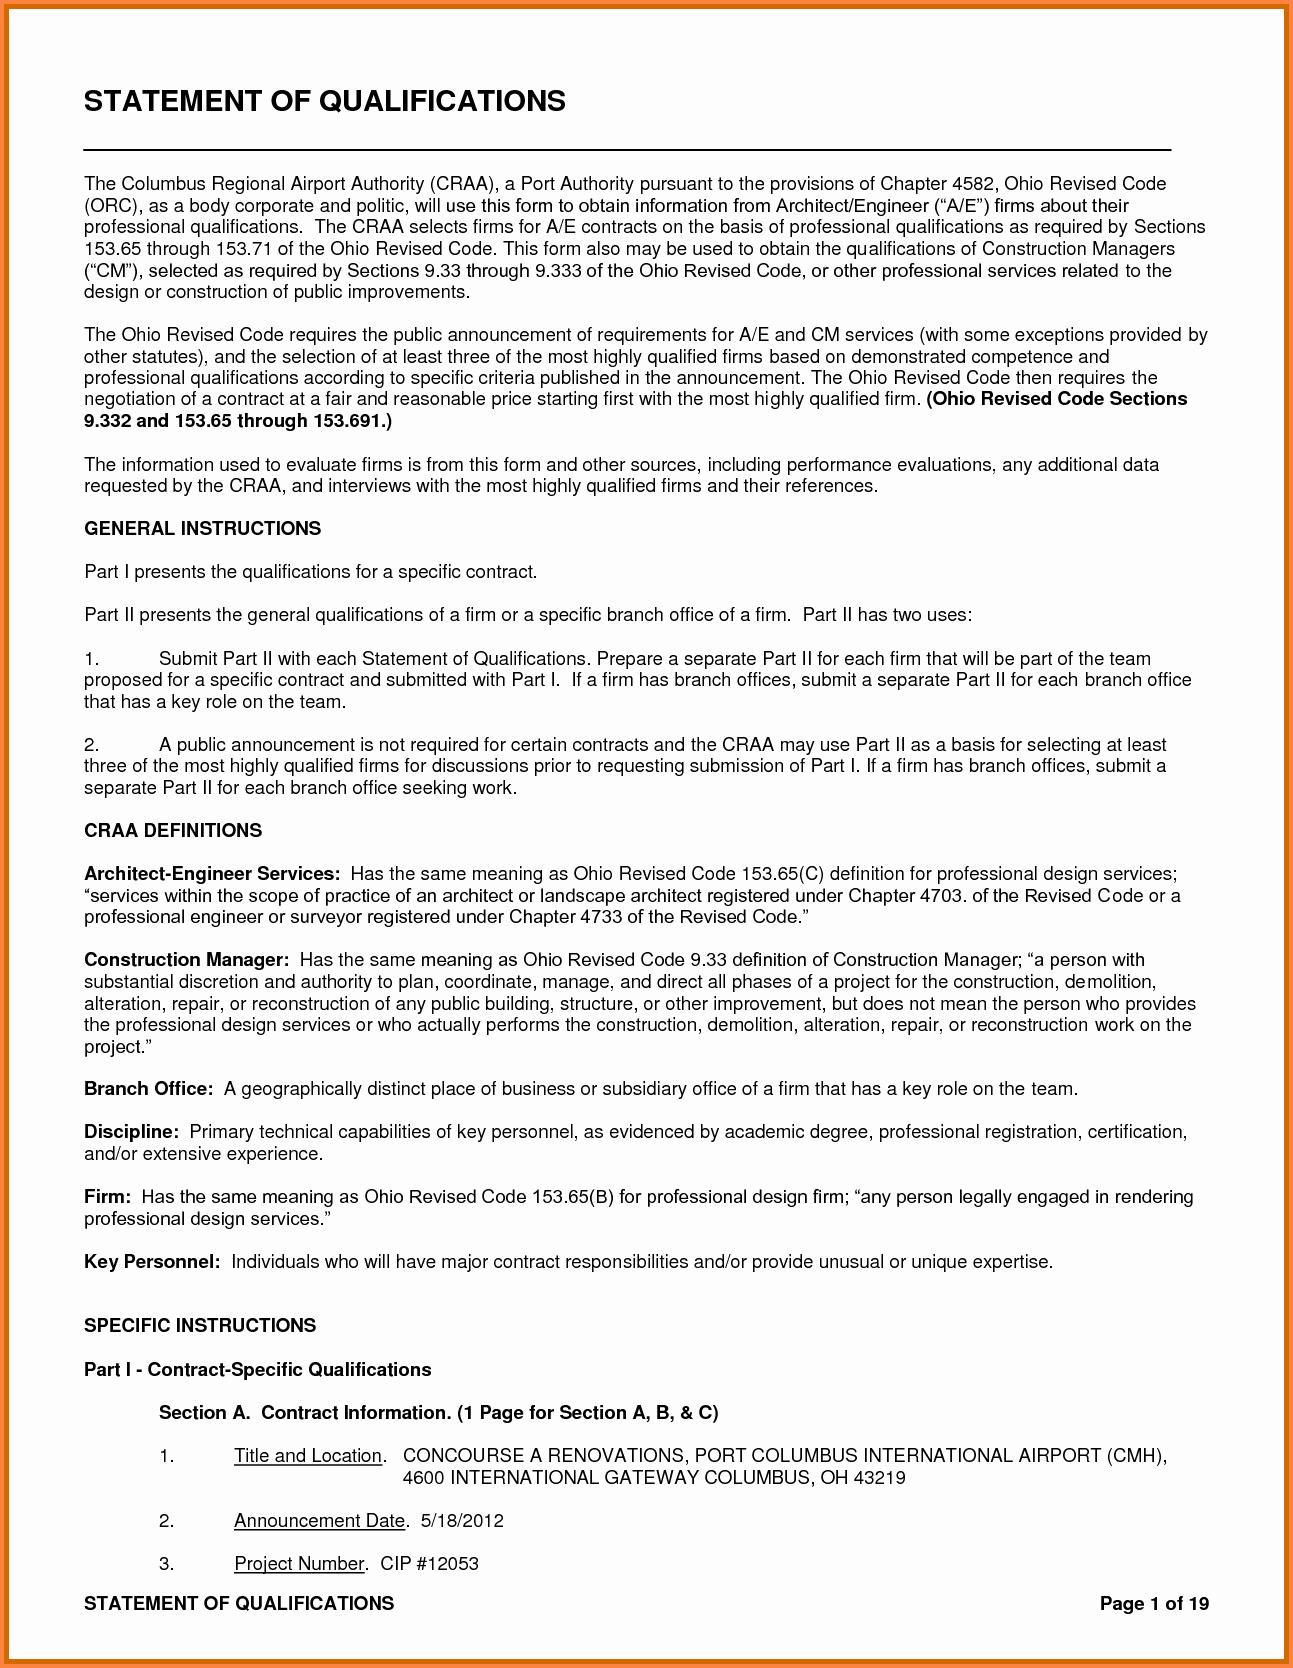 Statement Of Qualifications Template Free Awesome 6 Statement Of Qualifications Template